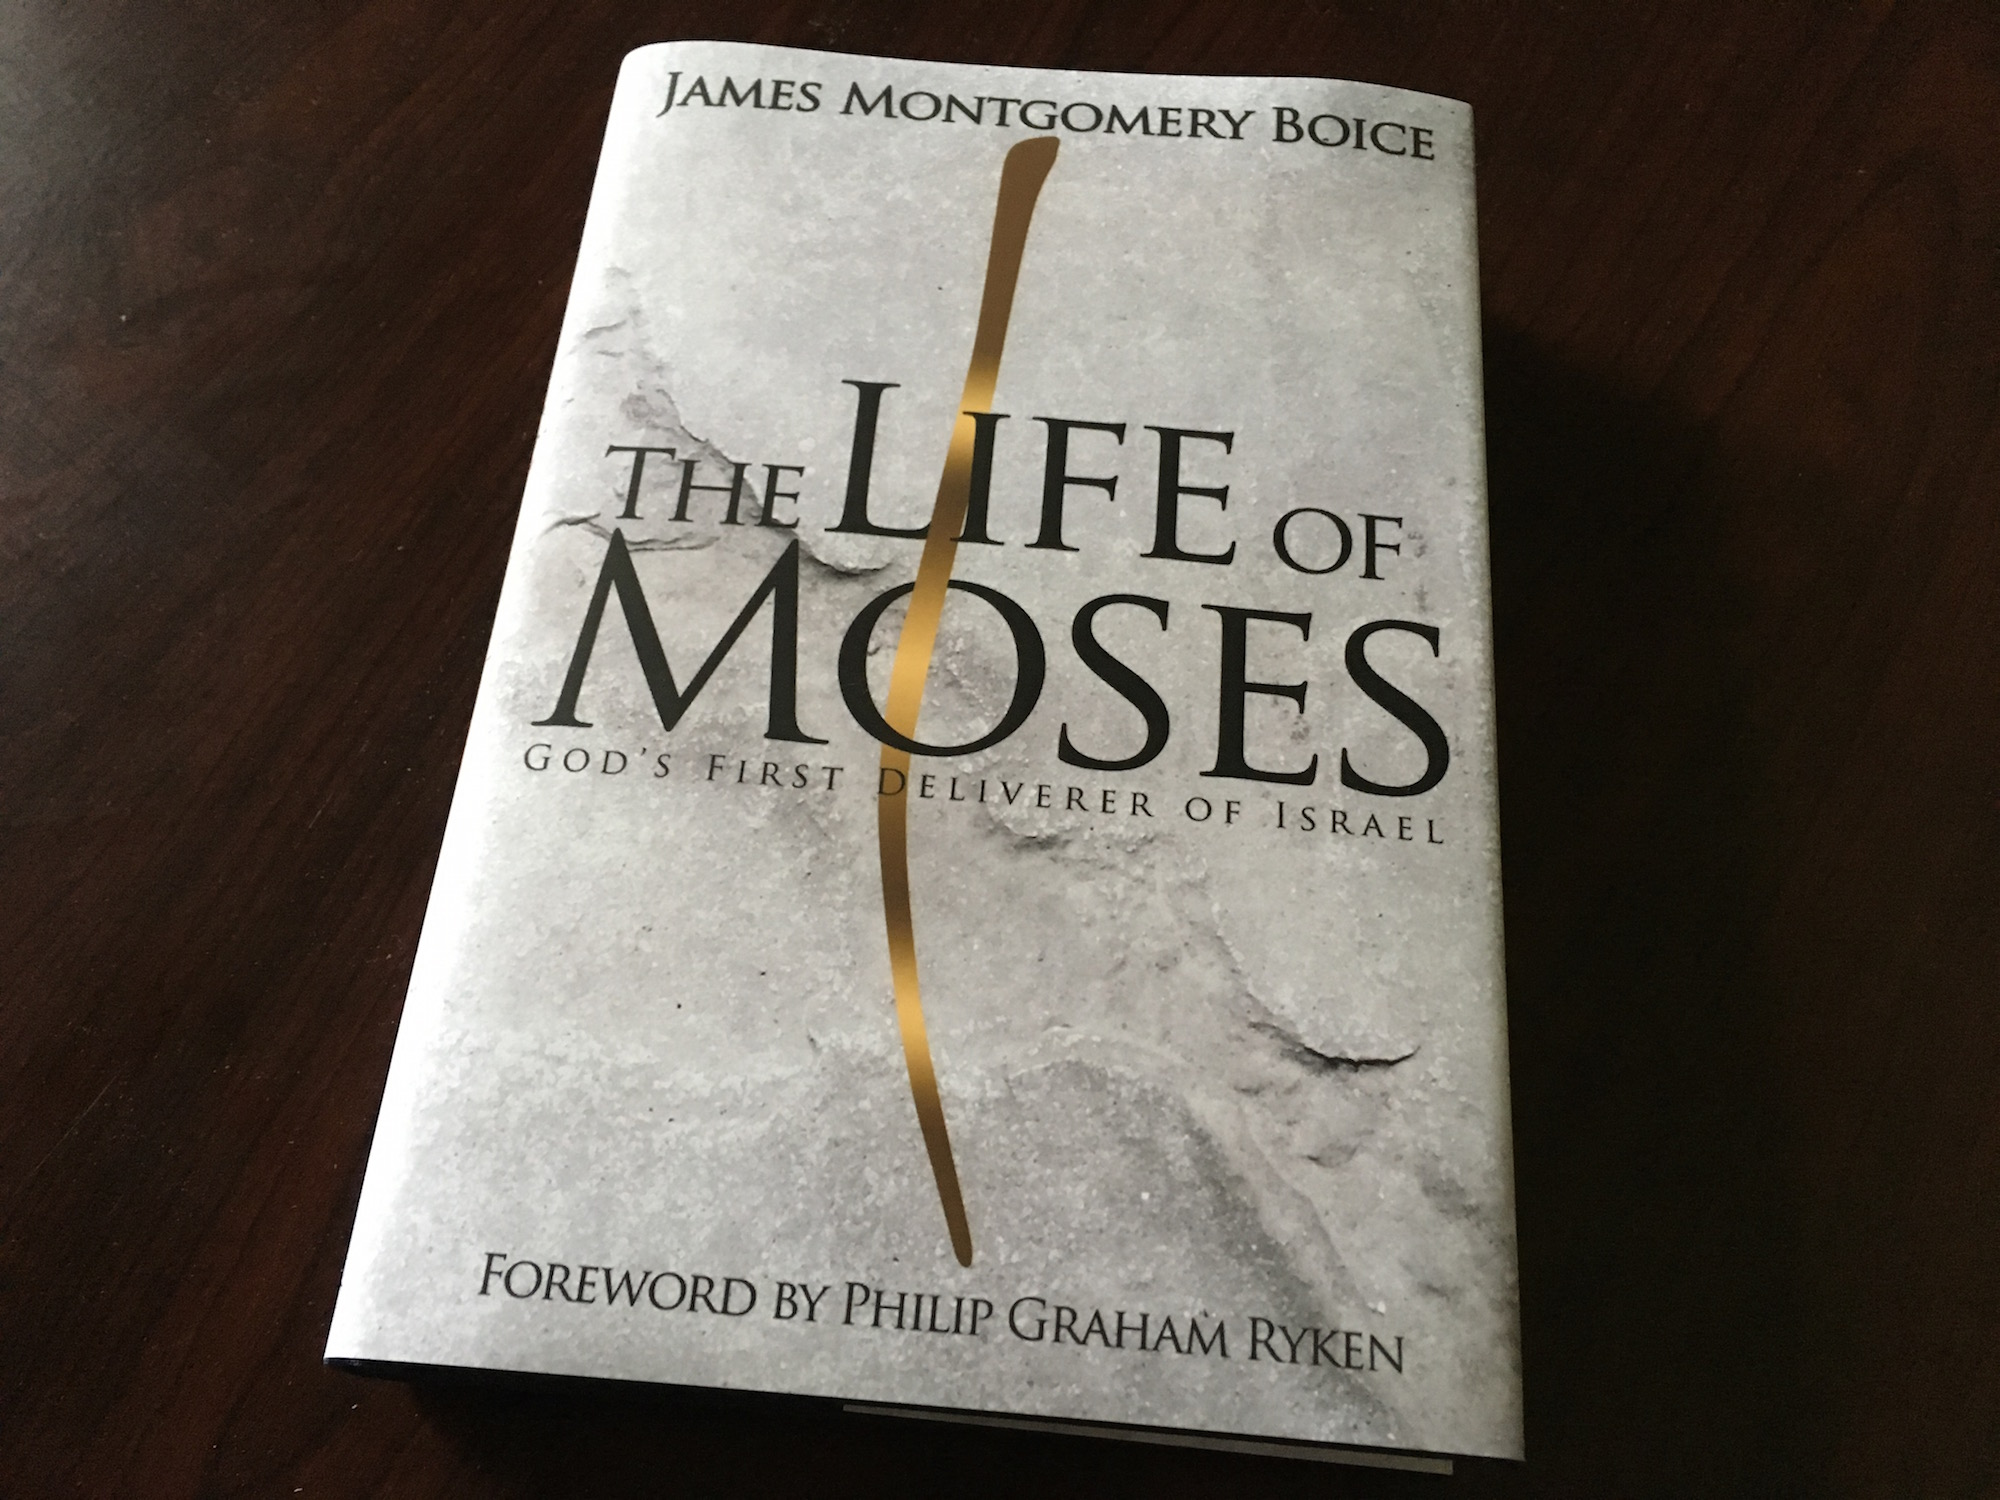 The Life of Moses_photo 2_small